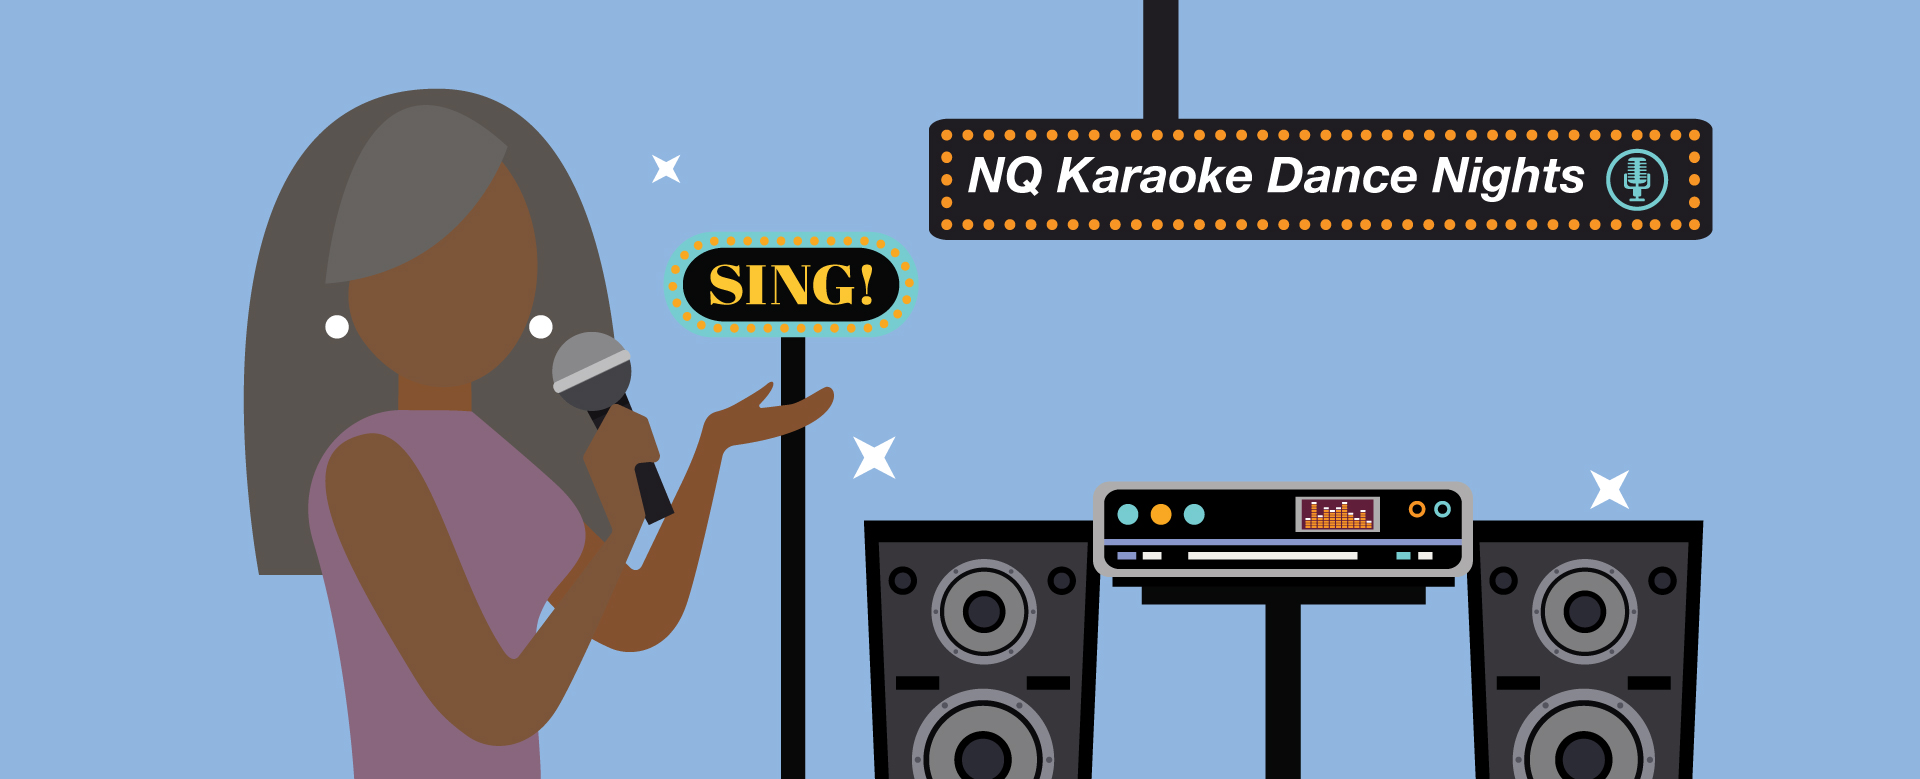 NQ Karaoke Dance Nights